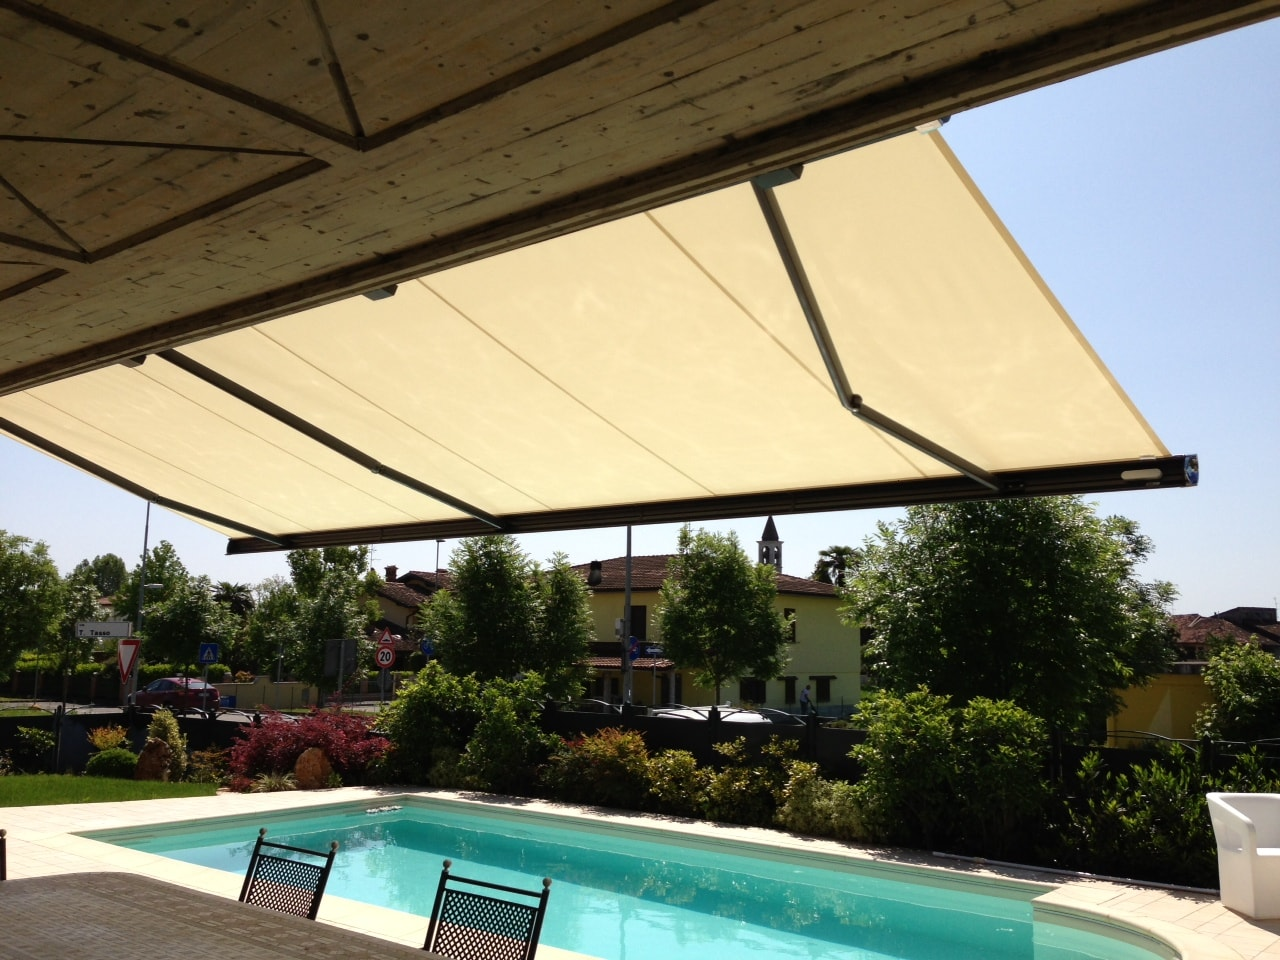 markilux-tenda-da-sole-piscina